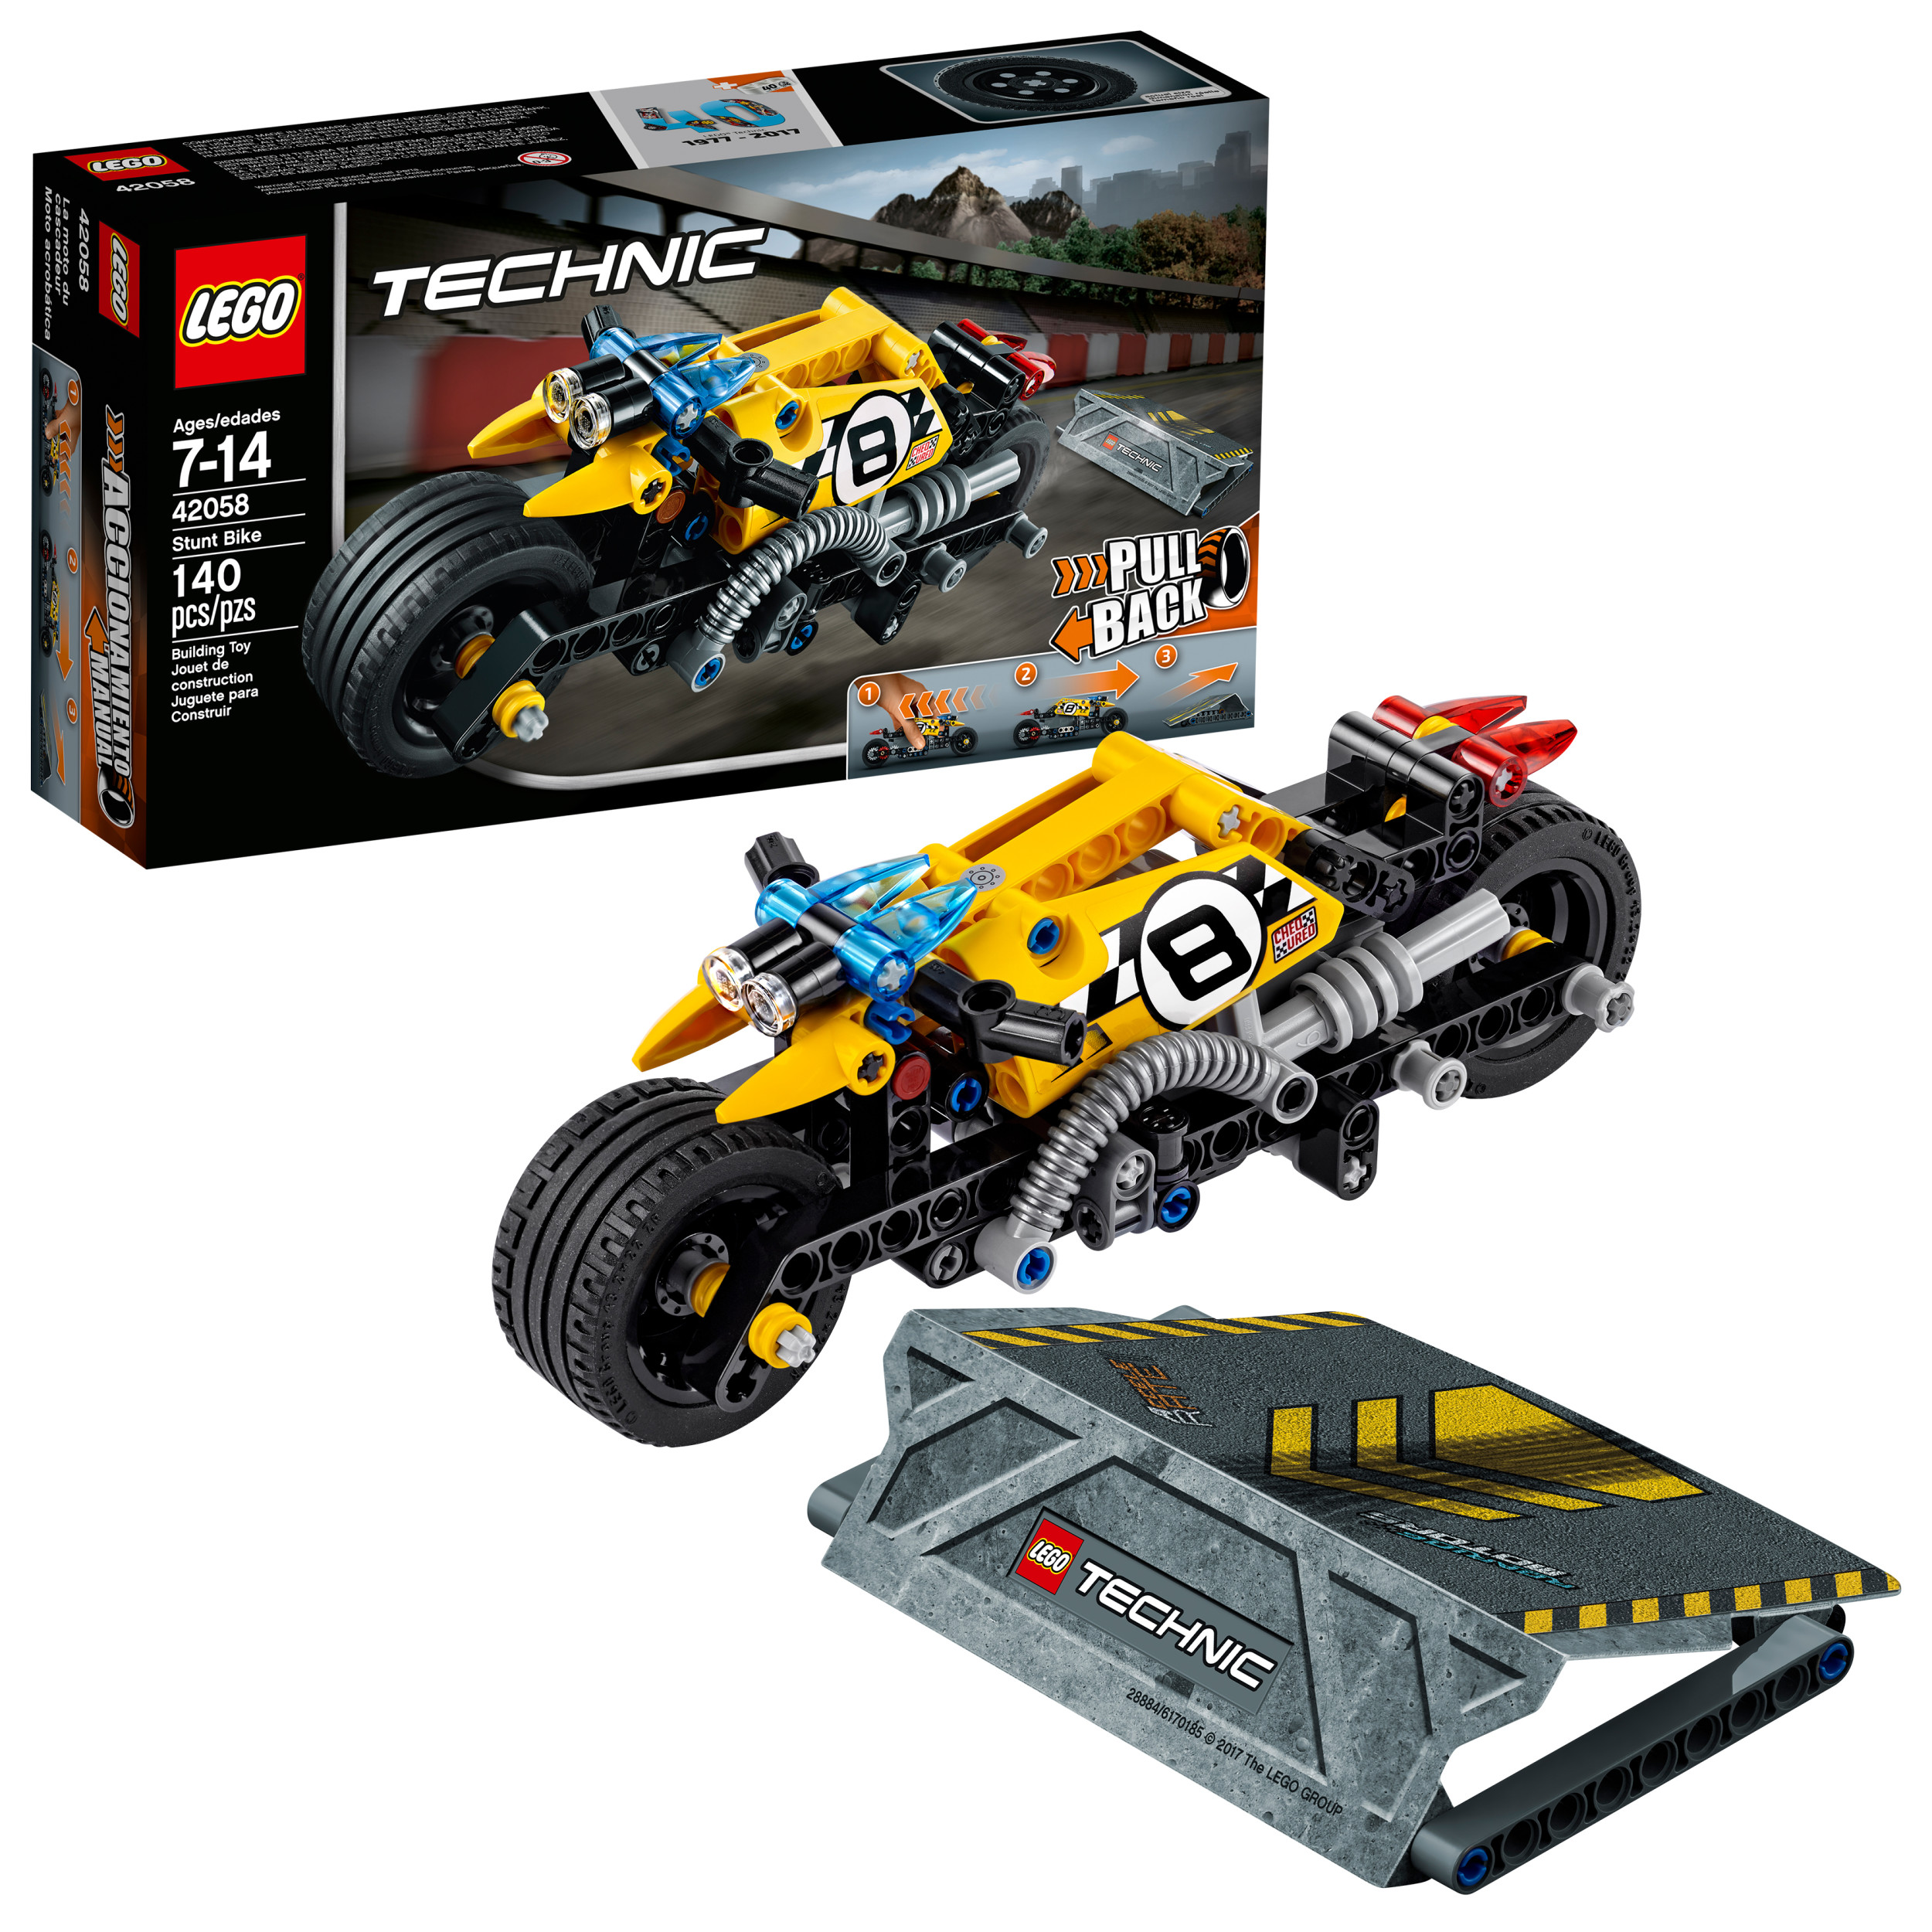 LEGO¨ Technic Stunt Bike 42058